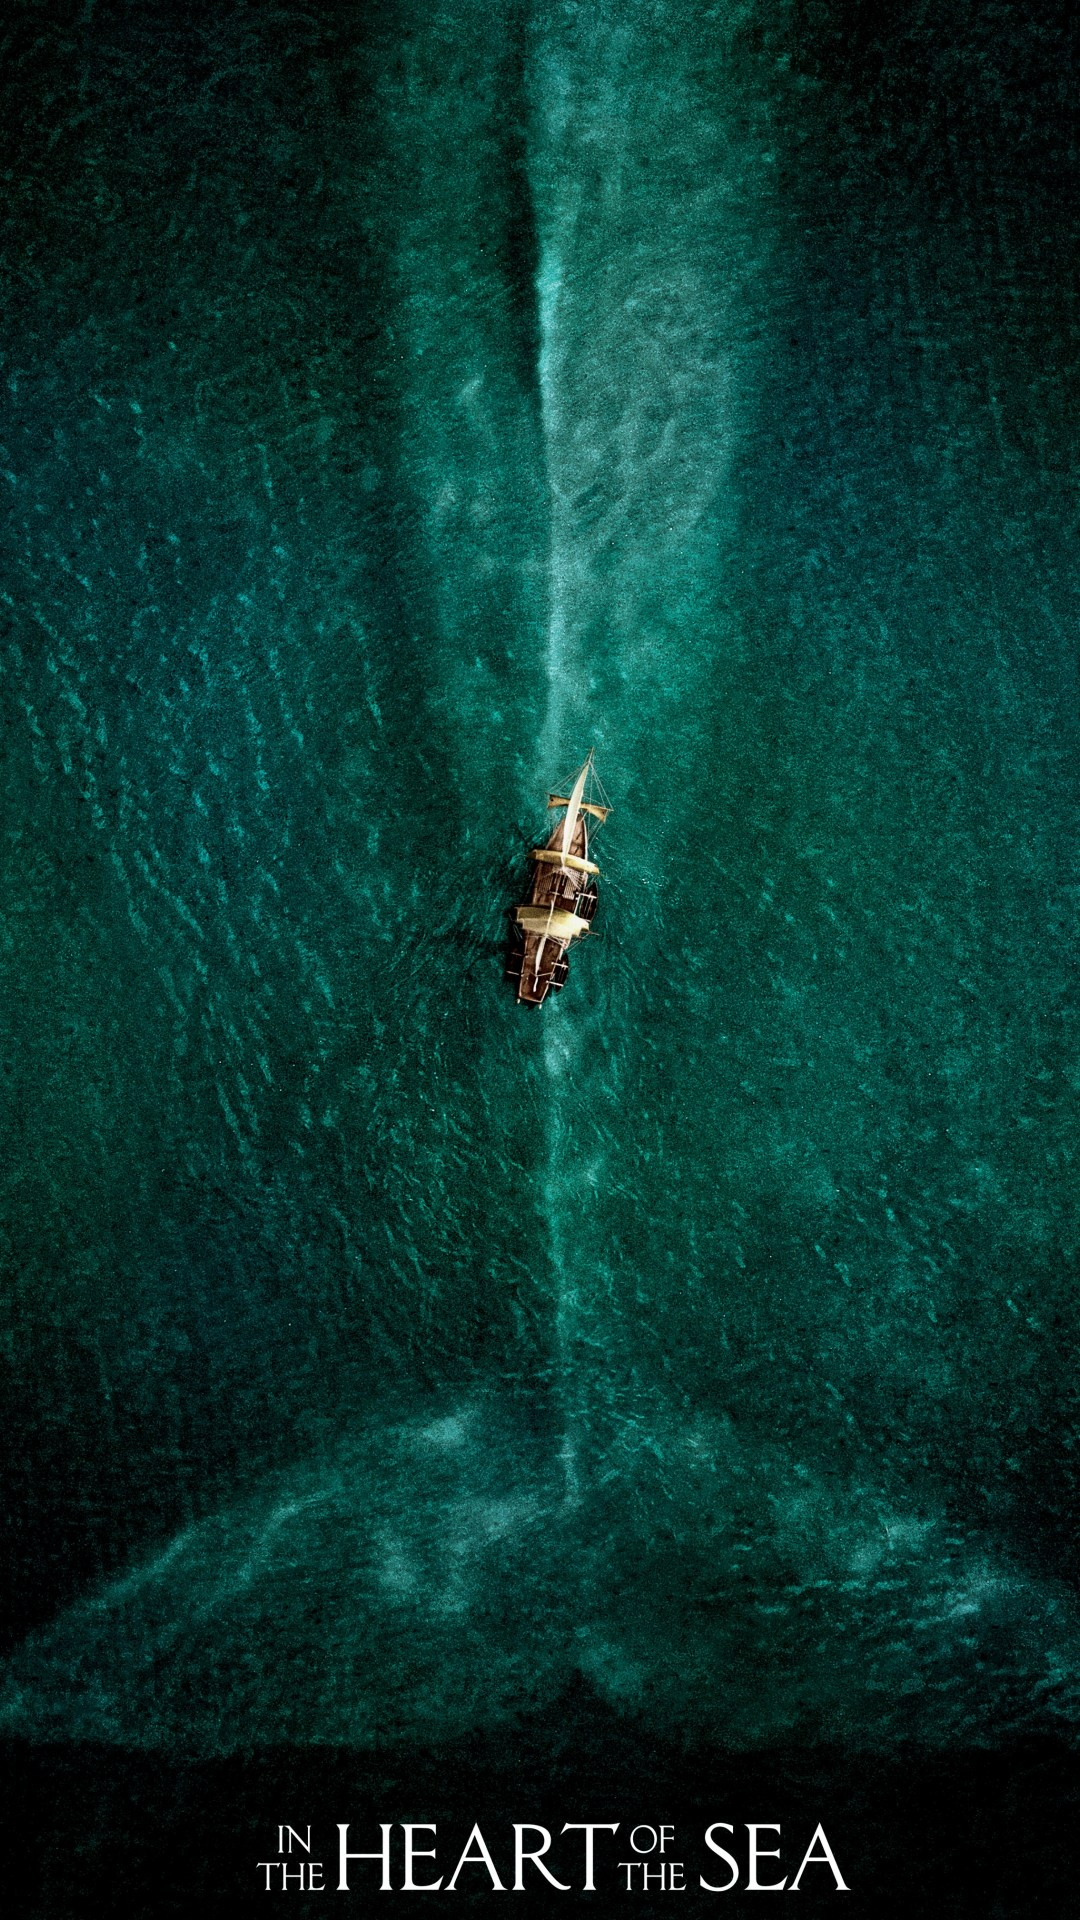 in the heart of the sea 2015 poster wallpapers 1080x1920